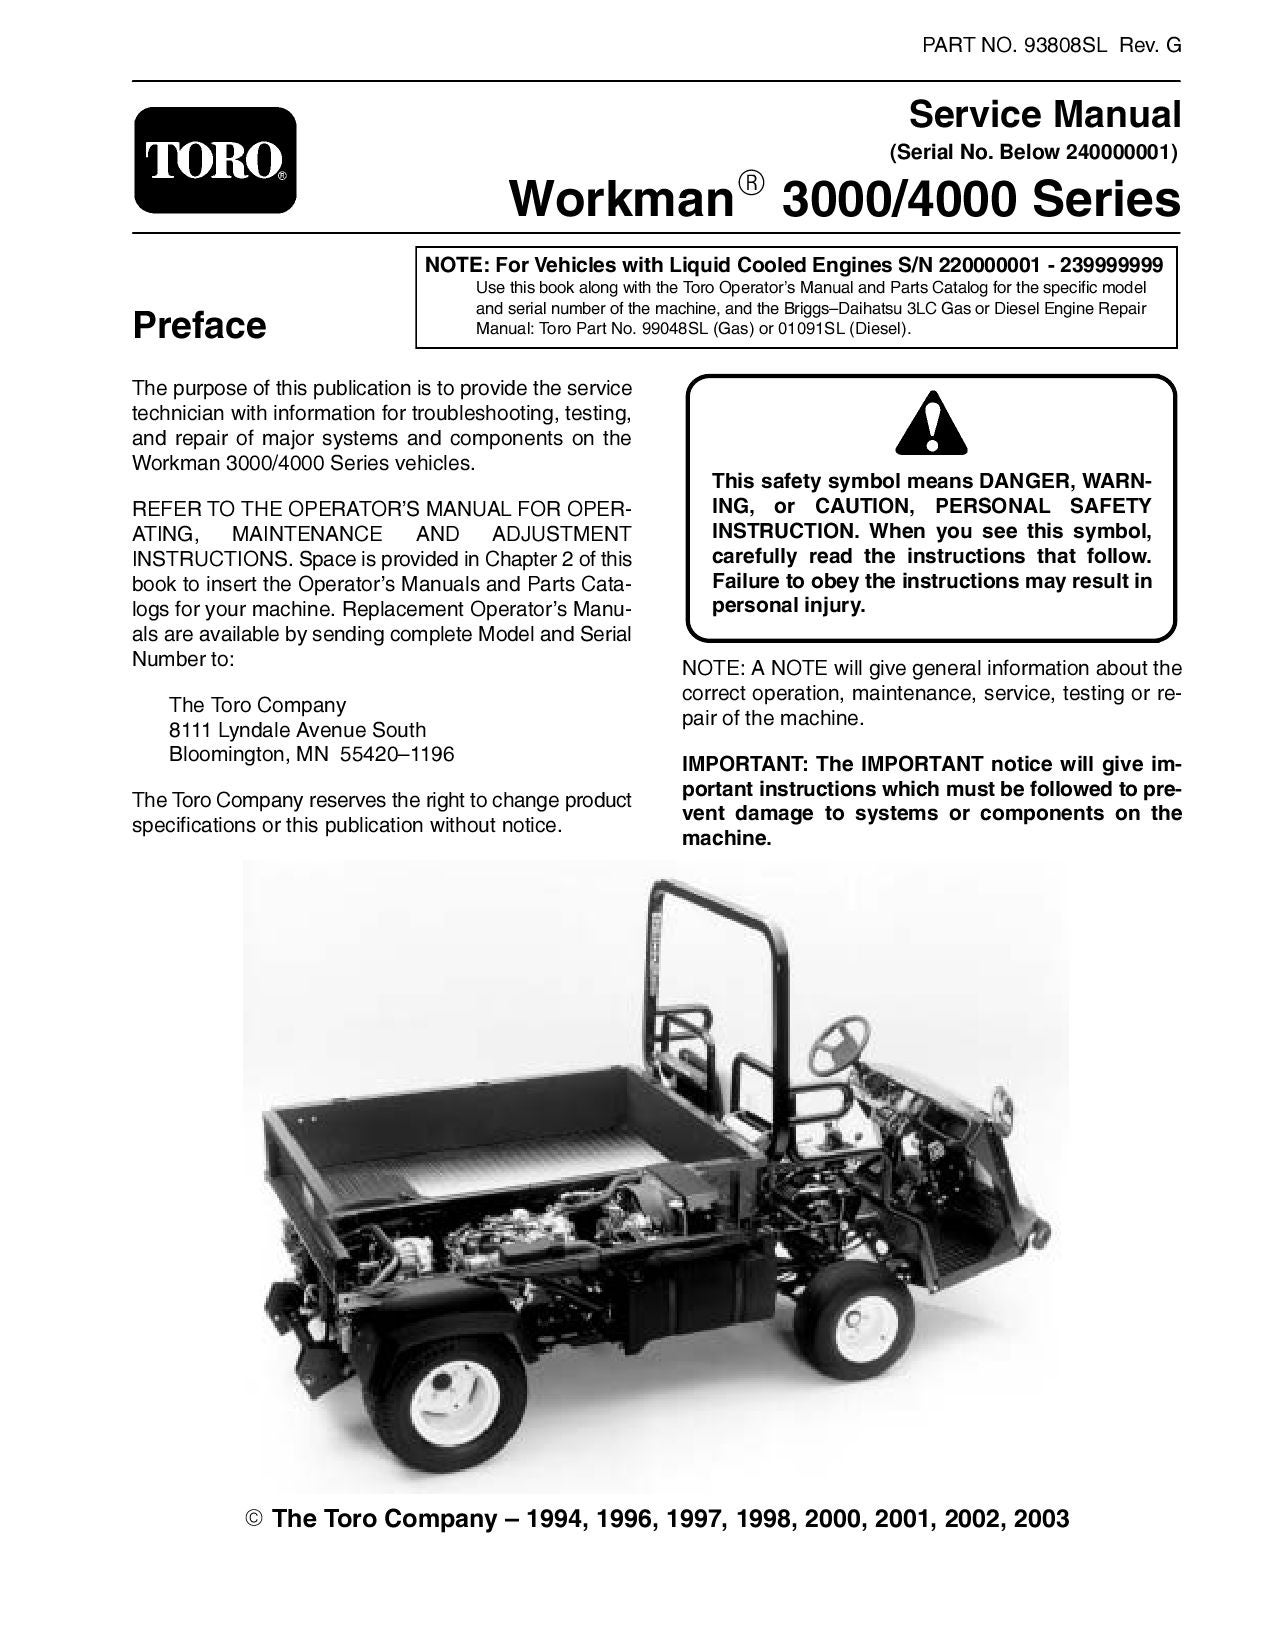 93808sl pdf workman 3000 4000 series (s n below 240000000) (rev g Toro Workman Electric Wiring Diagram 93808sl pdf workman 3000 4000 series (s n below 240000000) (rev g) 2003 by negimachi negimachi issuu